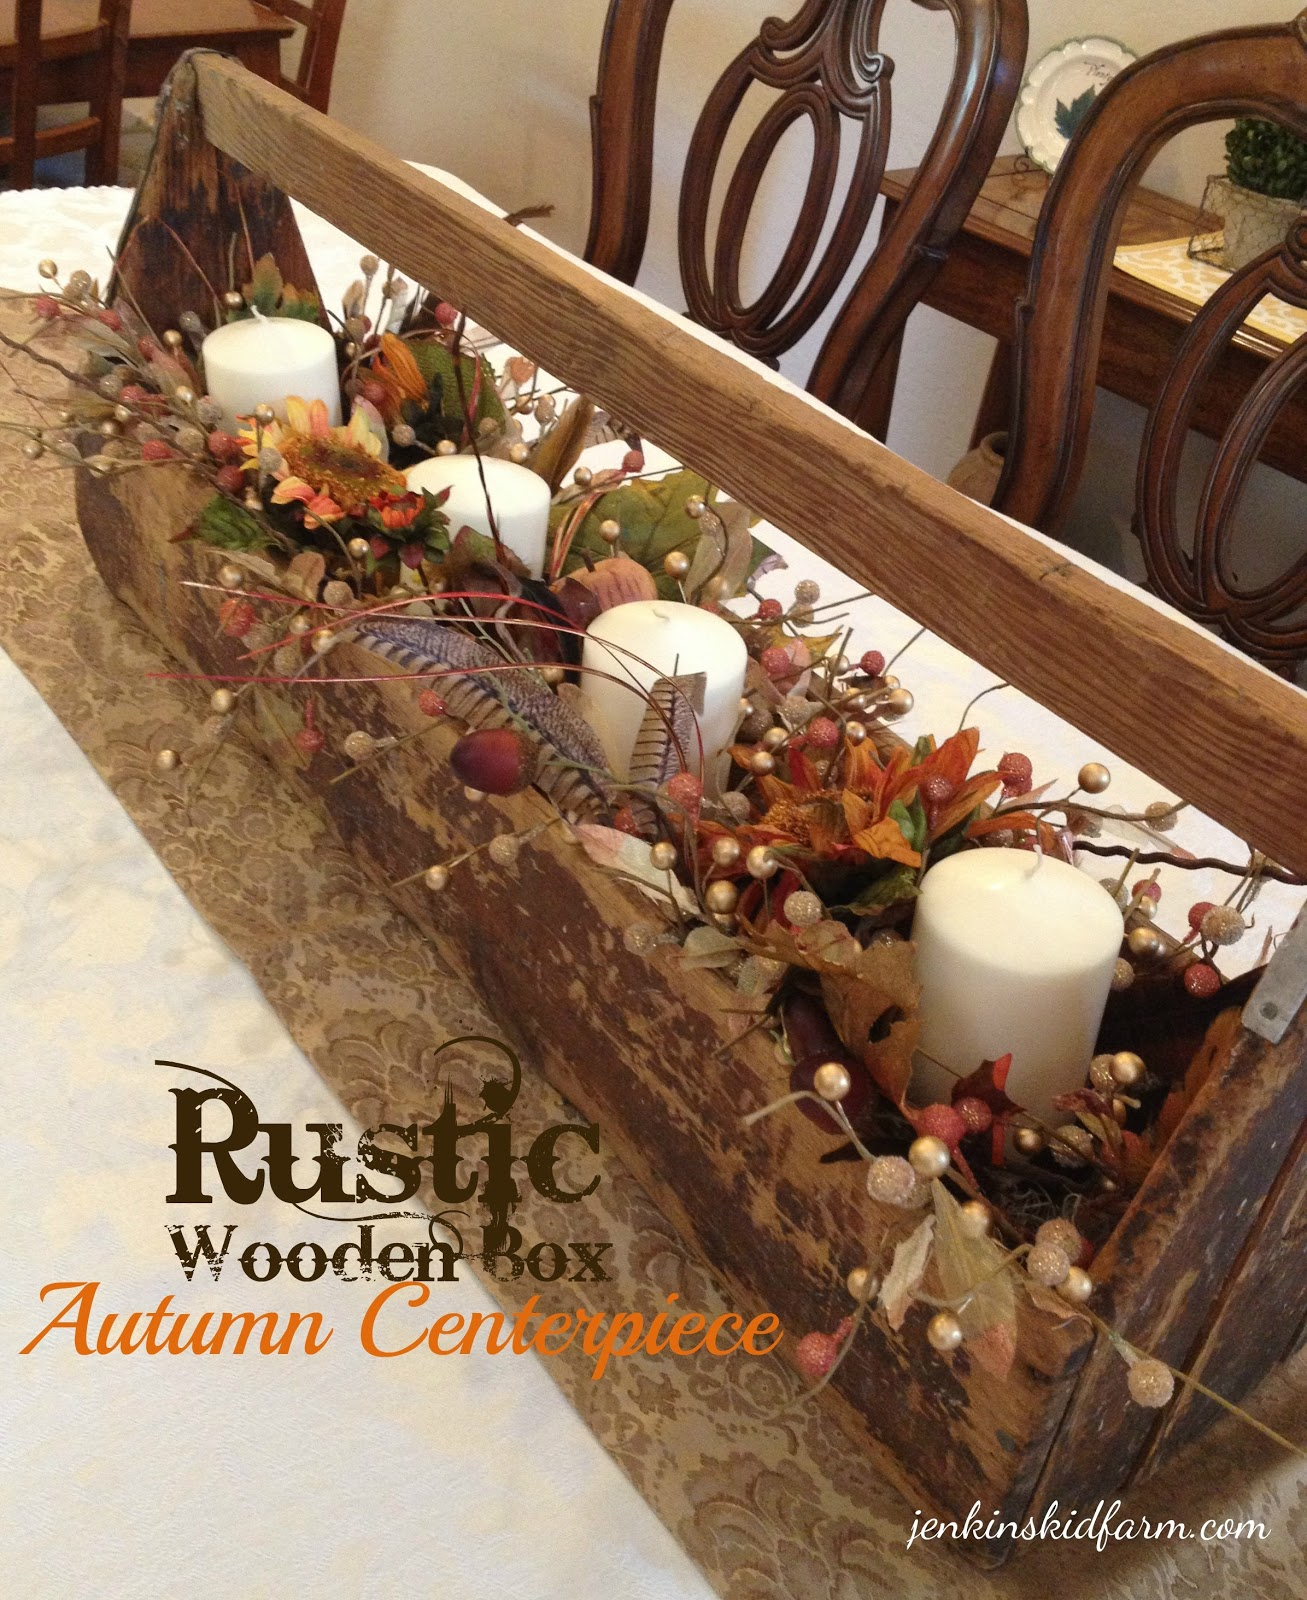 Jenkins kid farm the rustic wooden box autumn centerpiece